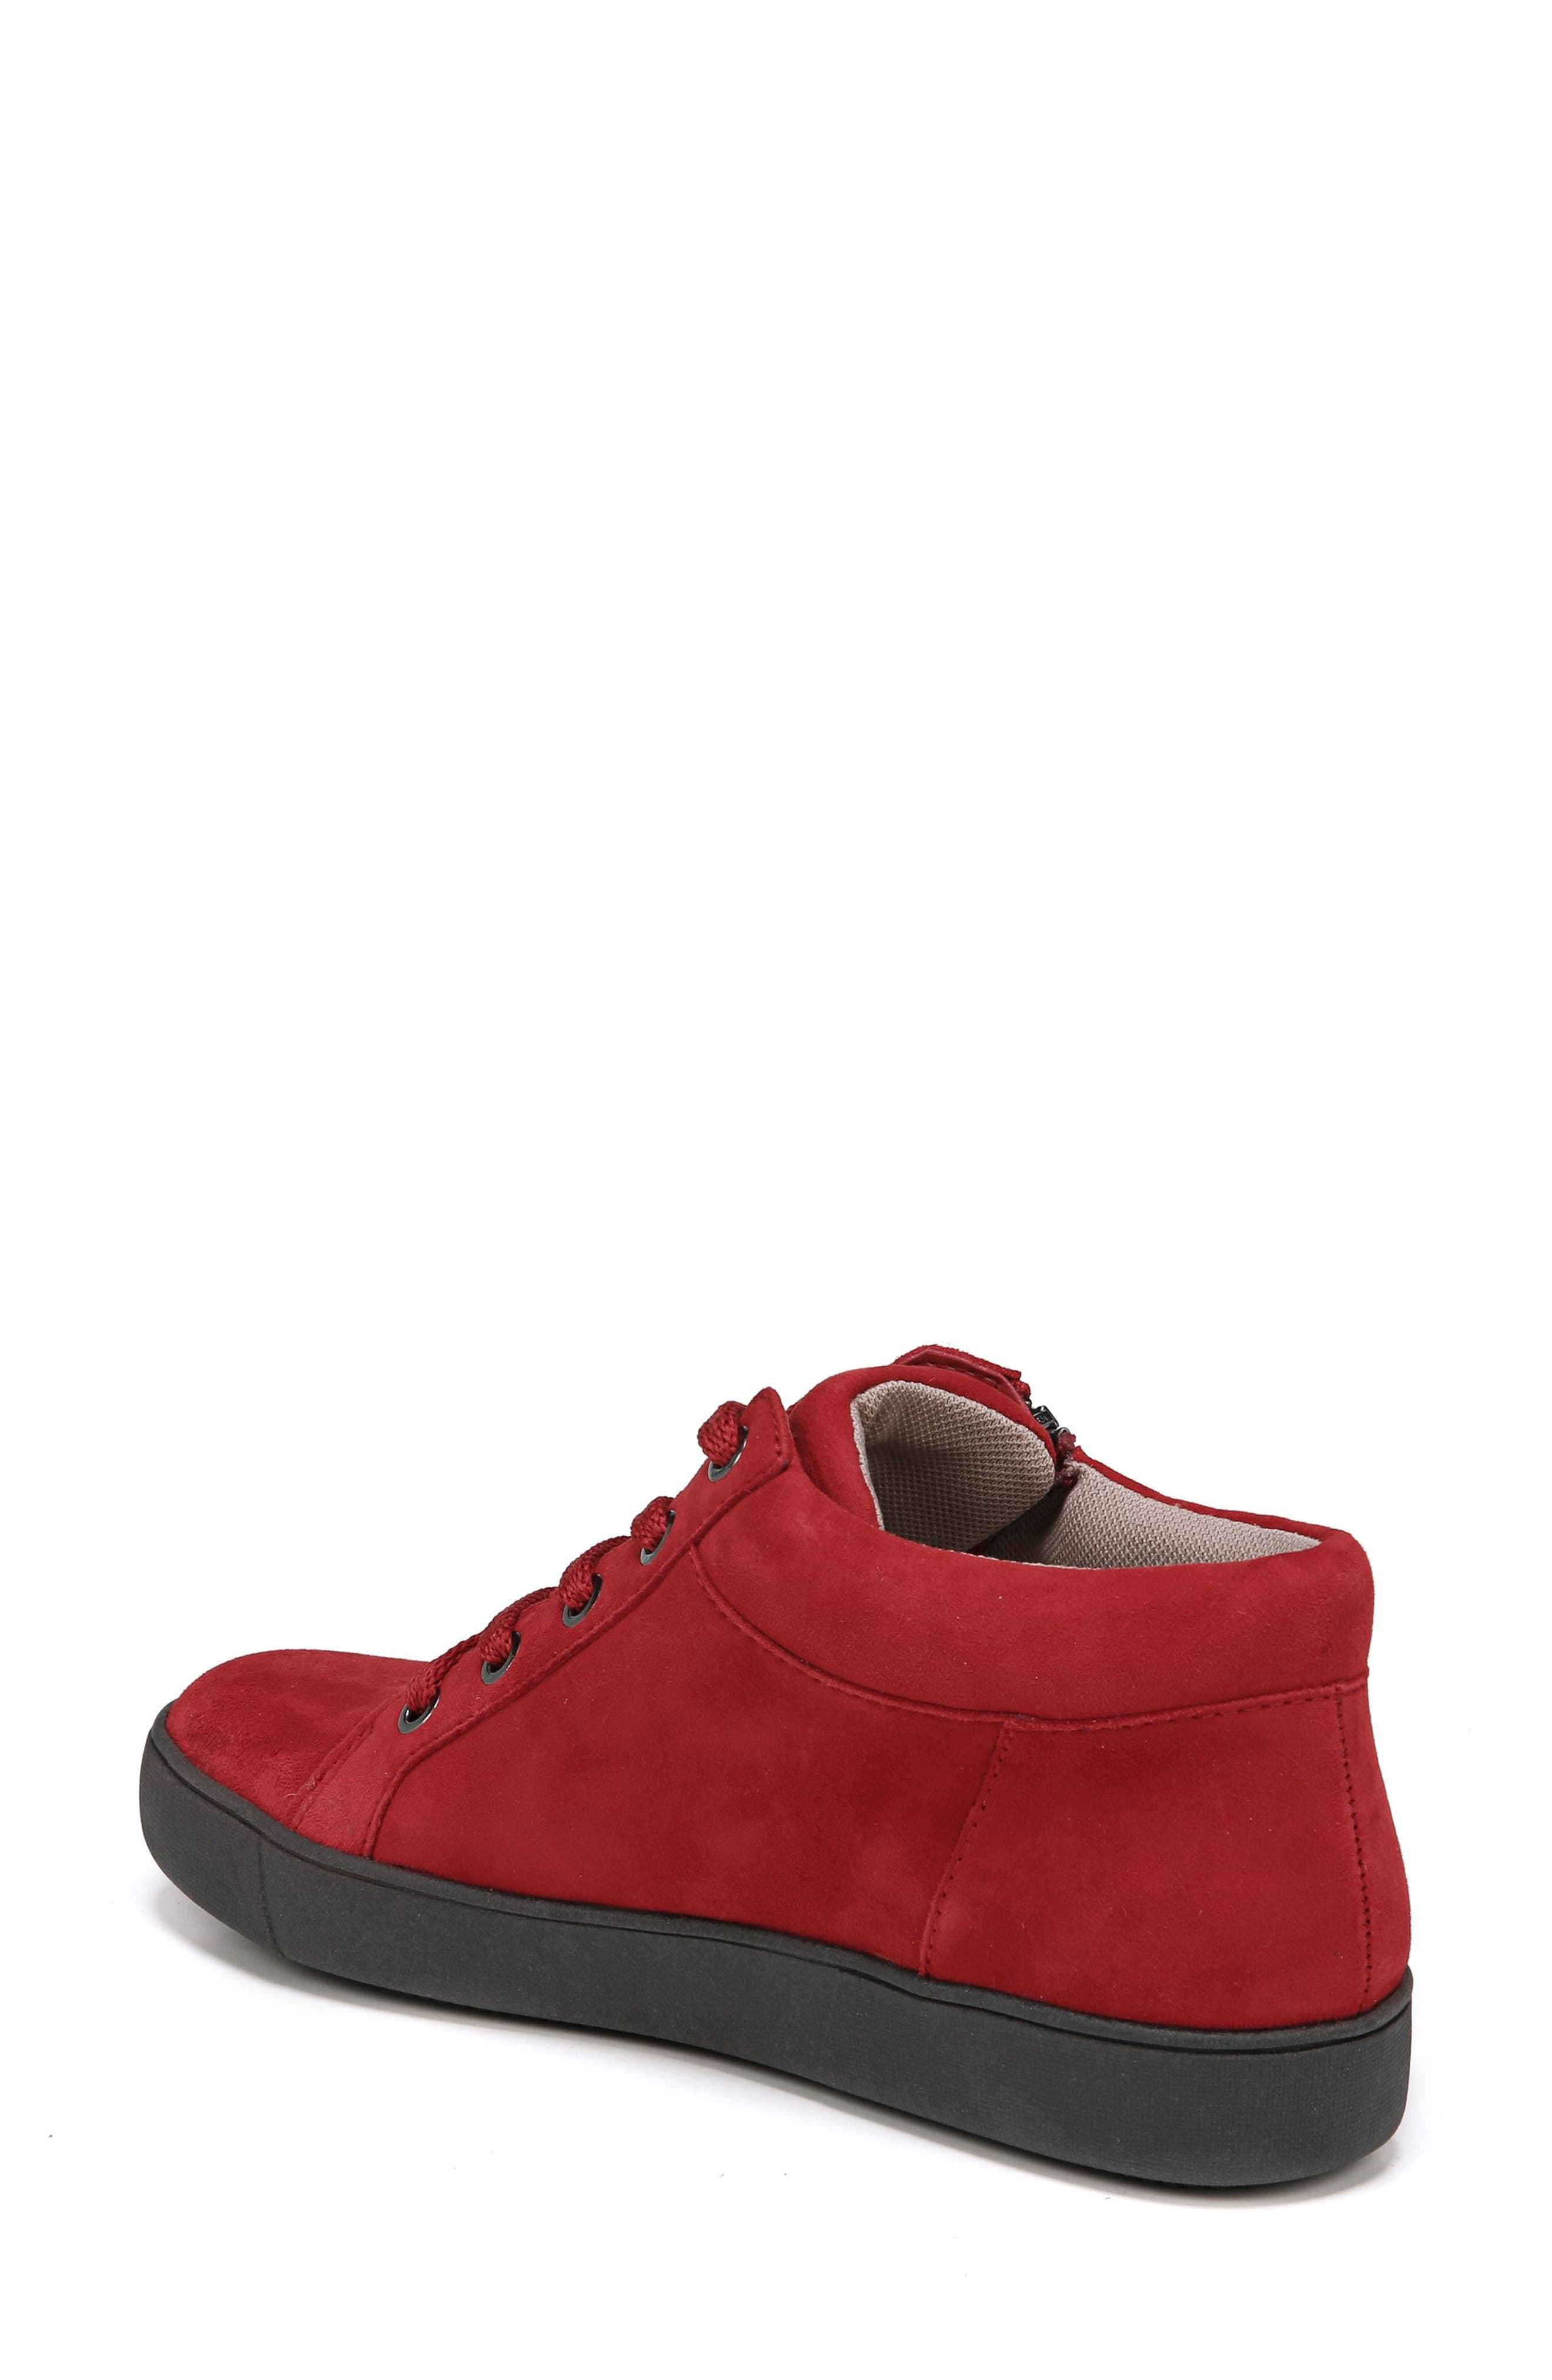 Motley Sneaker,                             Alternate thumbnail 2, color,                             Hot Sauce Suede